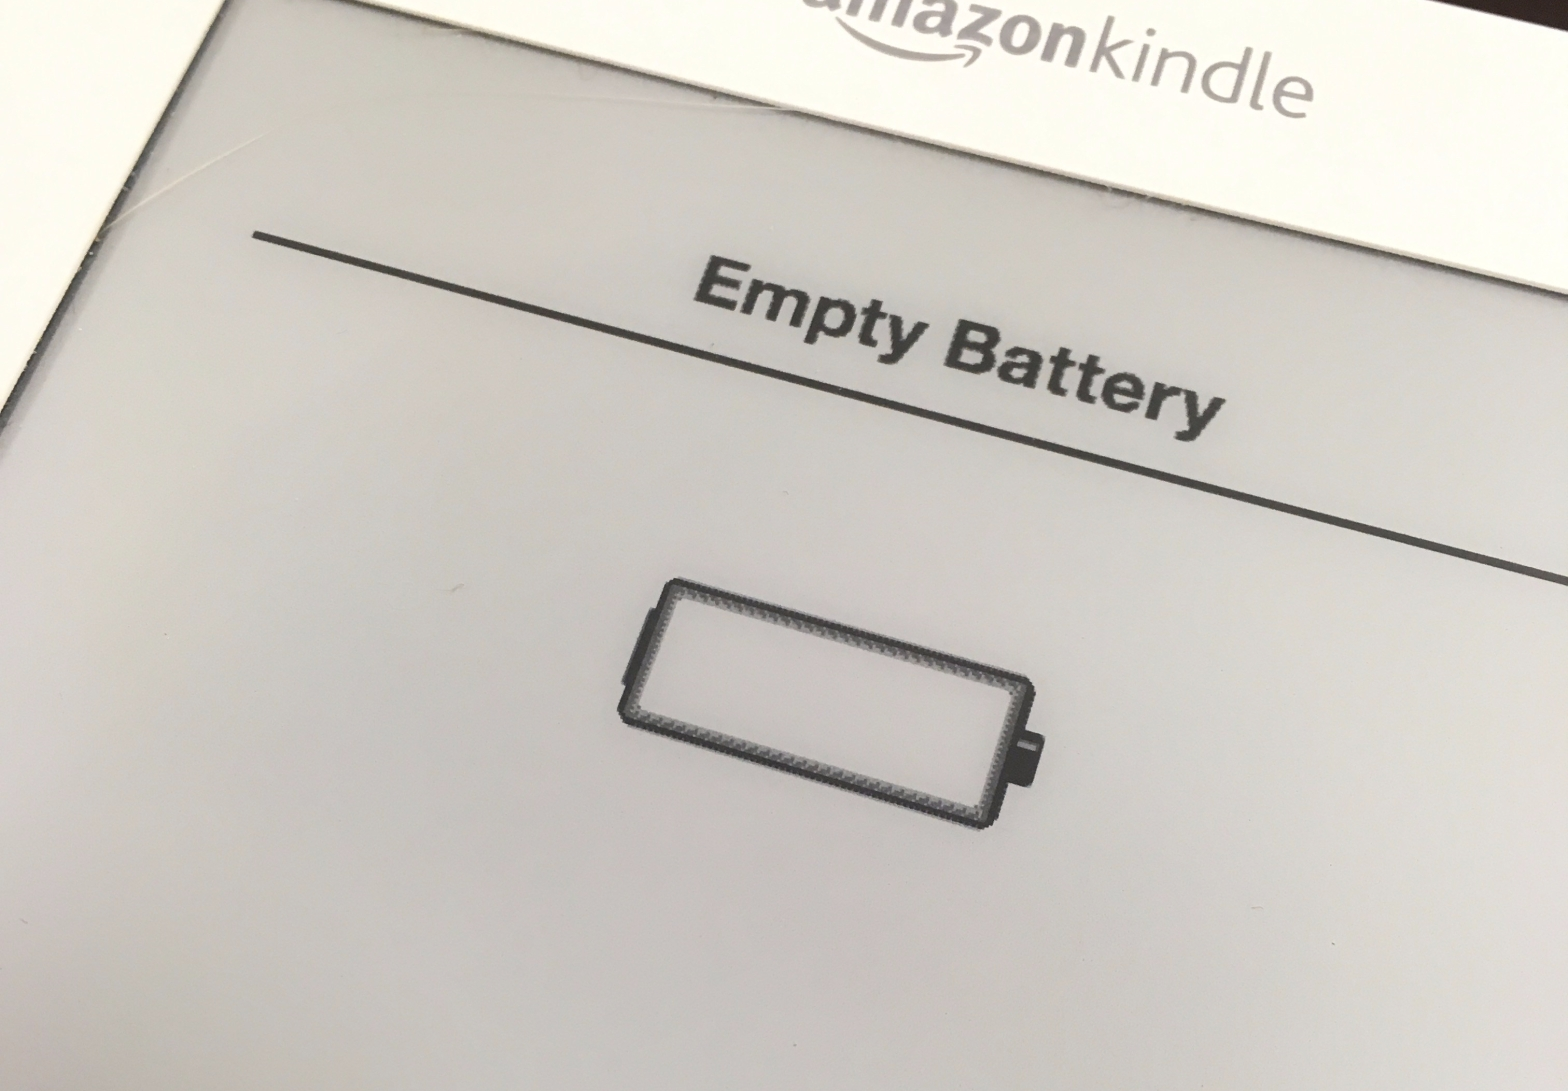 """""""Empty battery"""" notice on Amazon Kindle screen with a picture of an empty battery."""